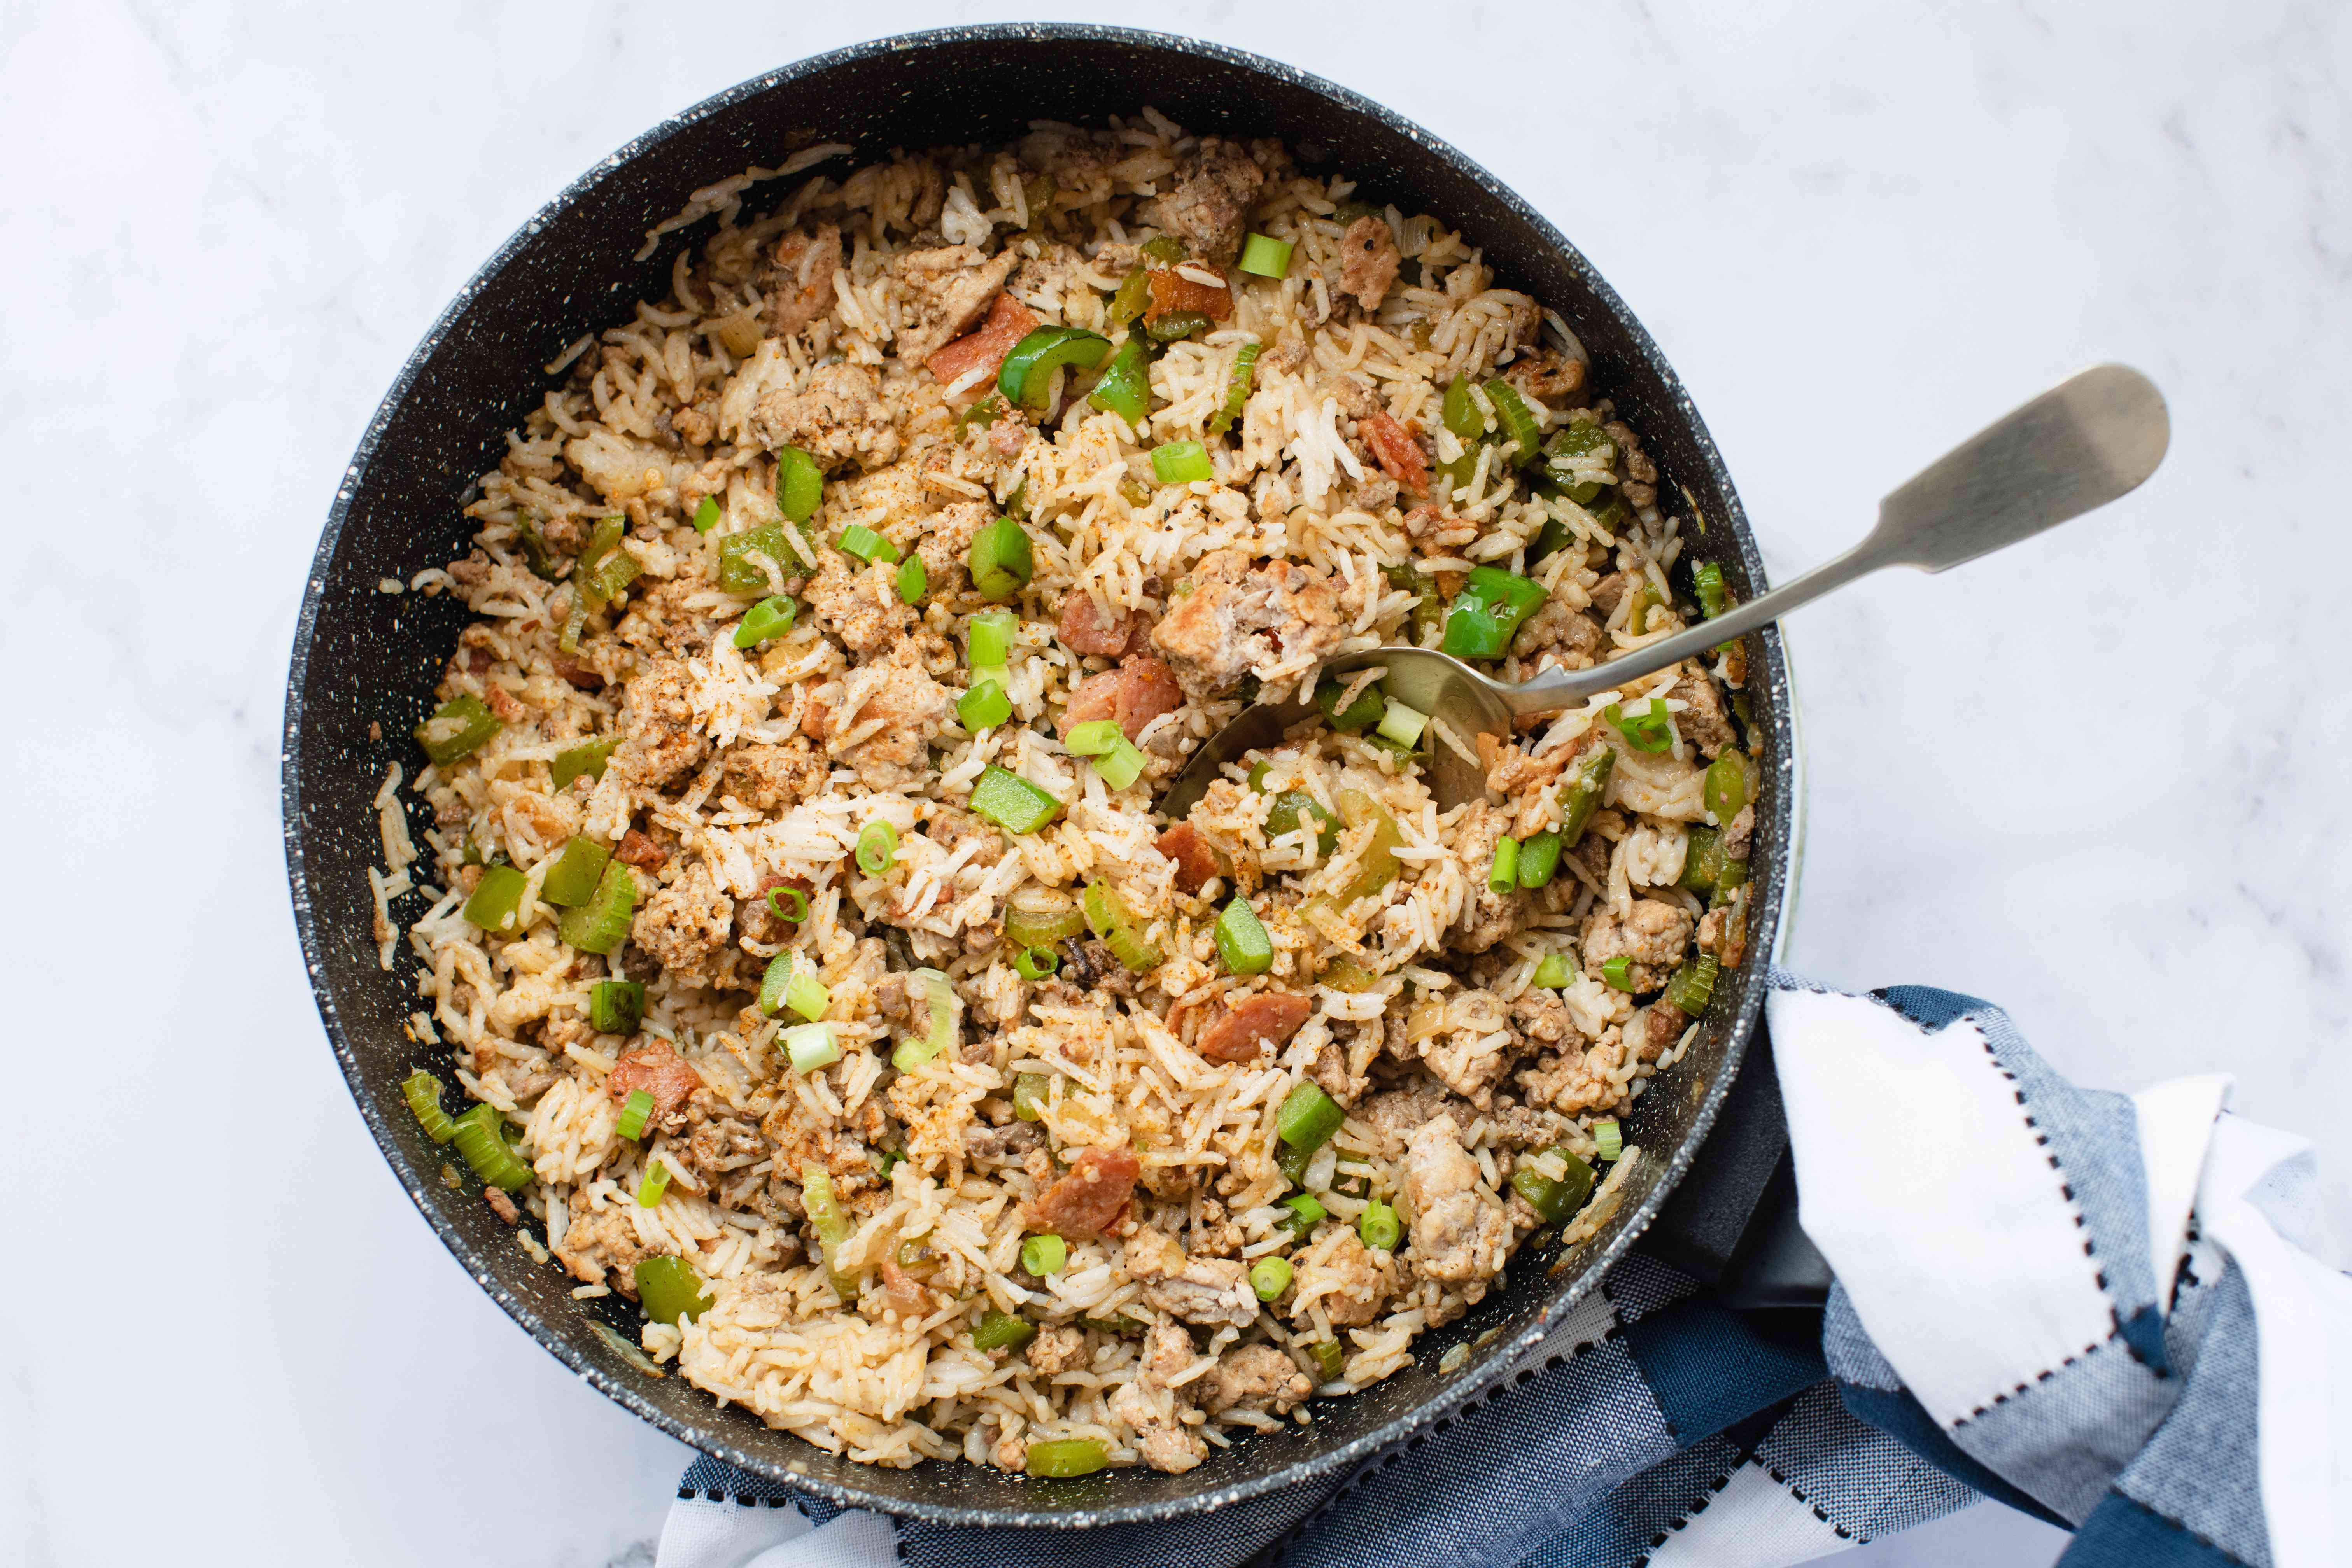 Overhead view of dirty rice in a skillet.